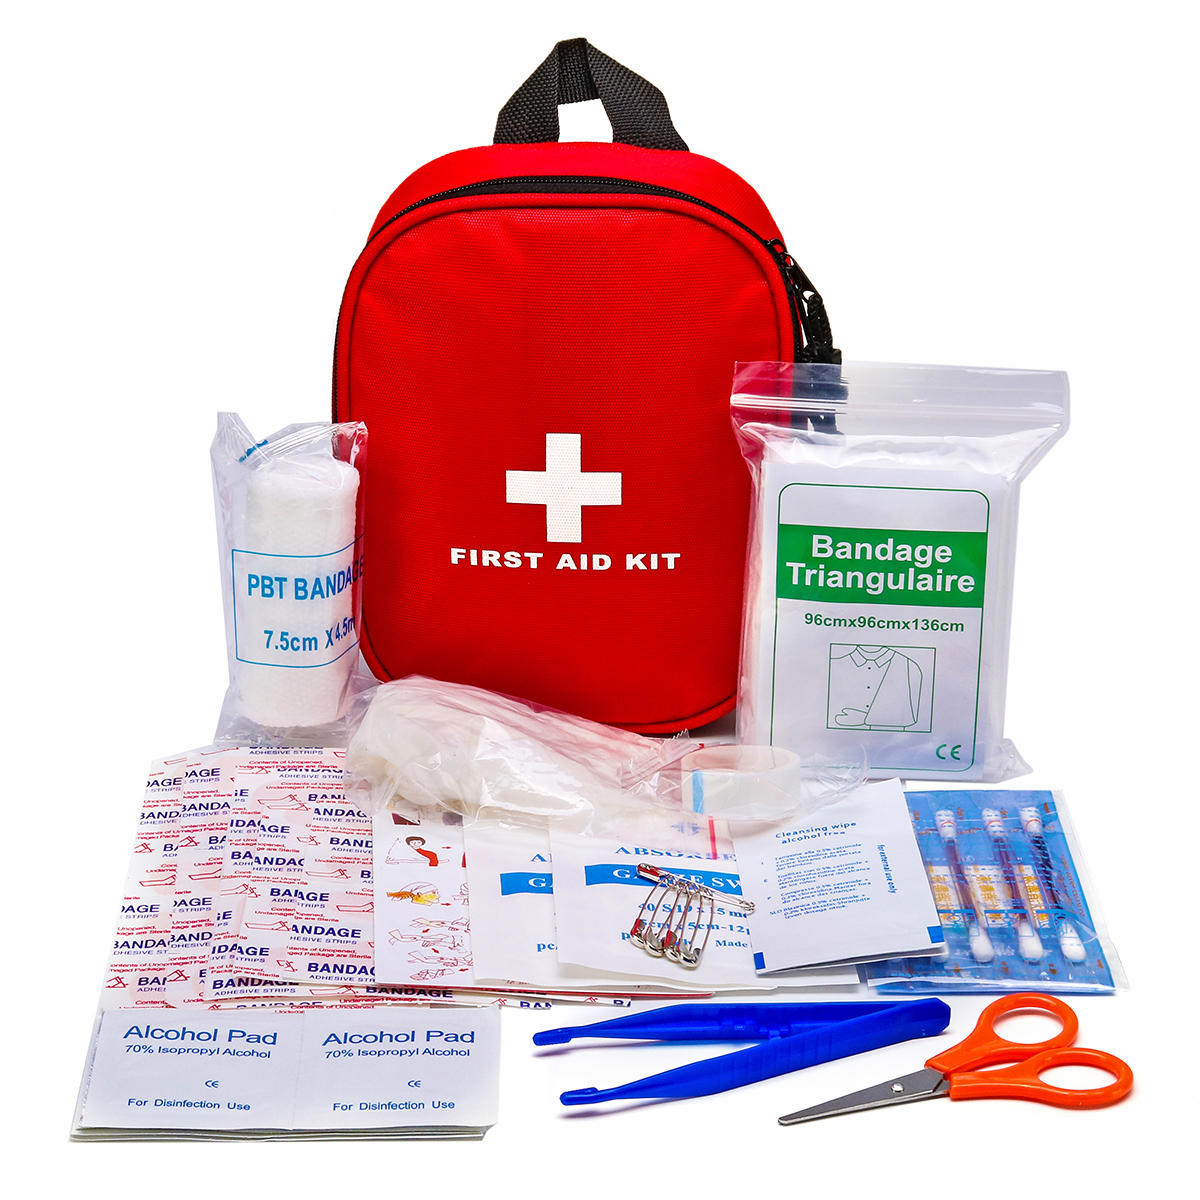 46Pcs IN 1 SOS Emergency Survival Kit First Aid Kit For Home Office Camping